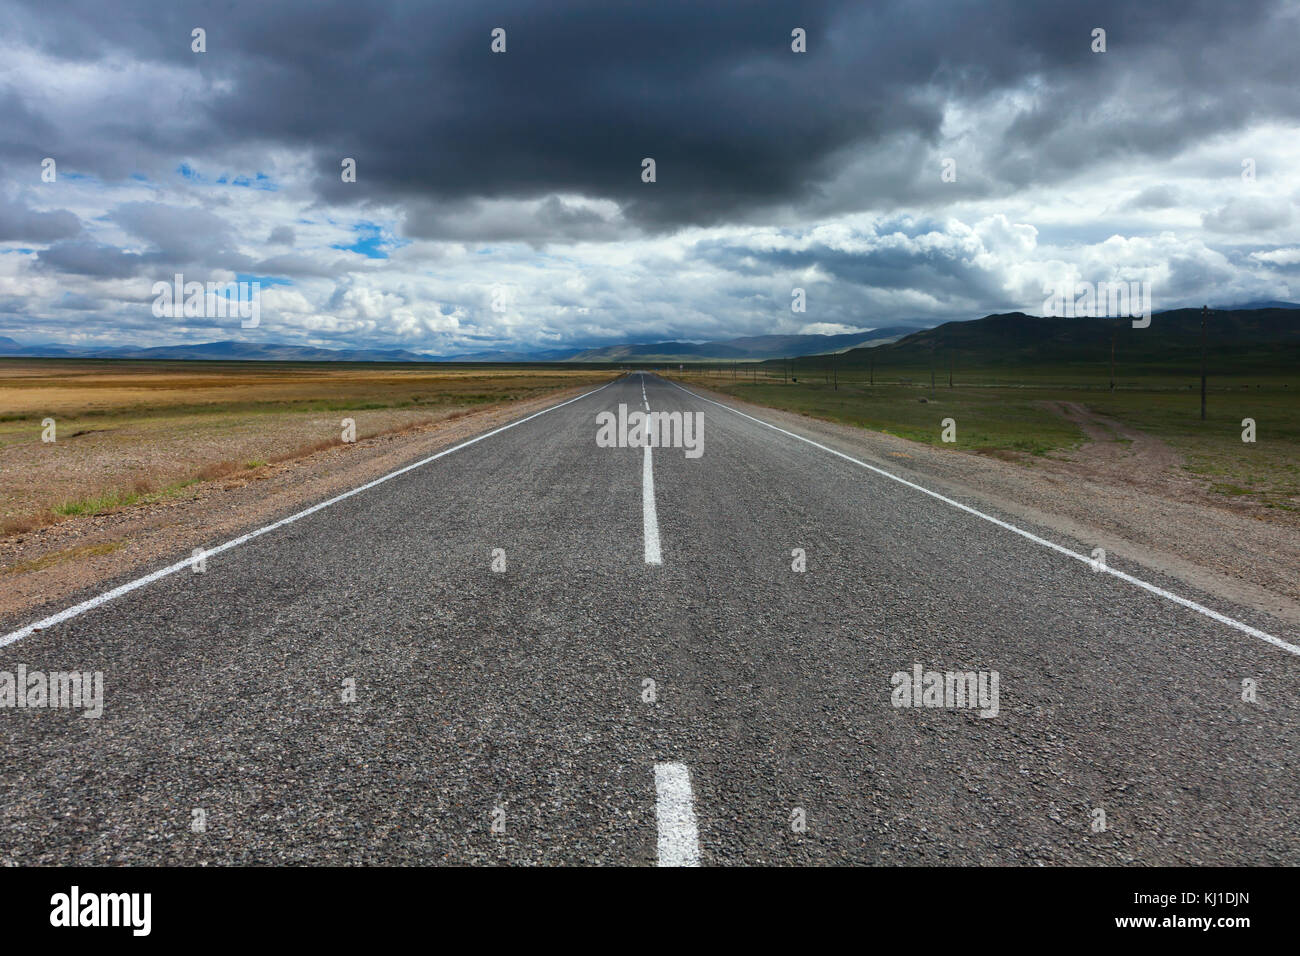 An empty desert road with dark and foreboding storm clouds on the horizon. - Stock Image